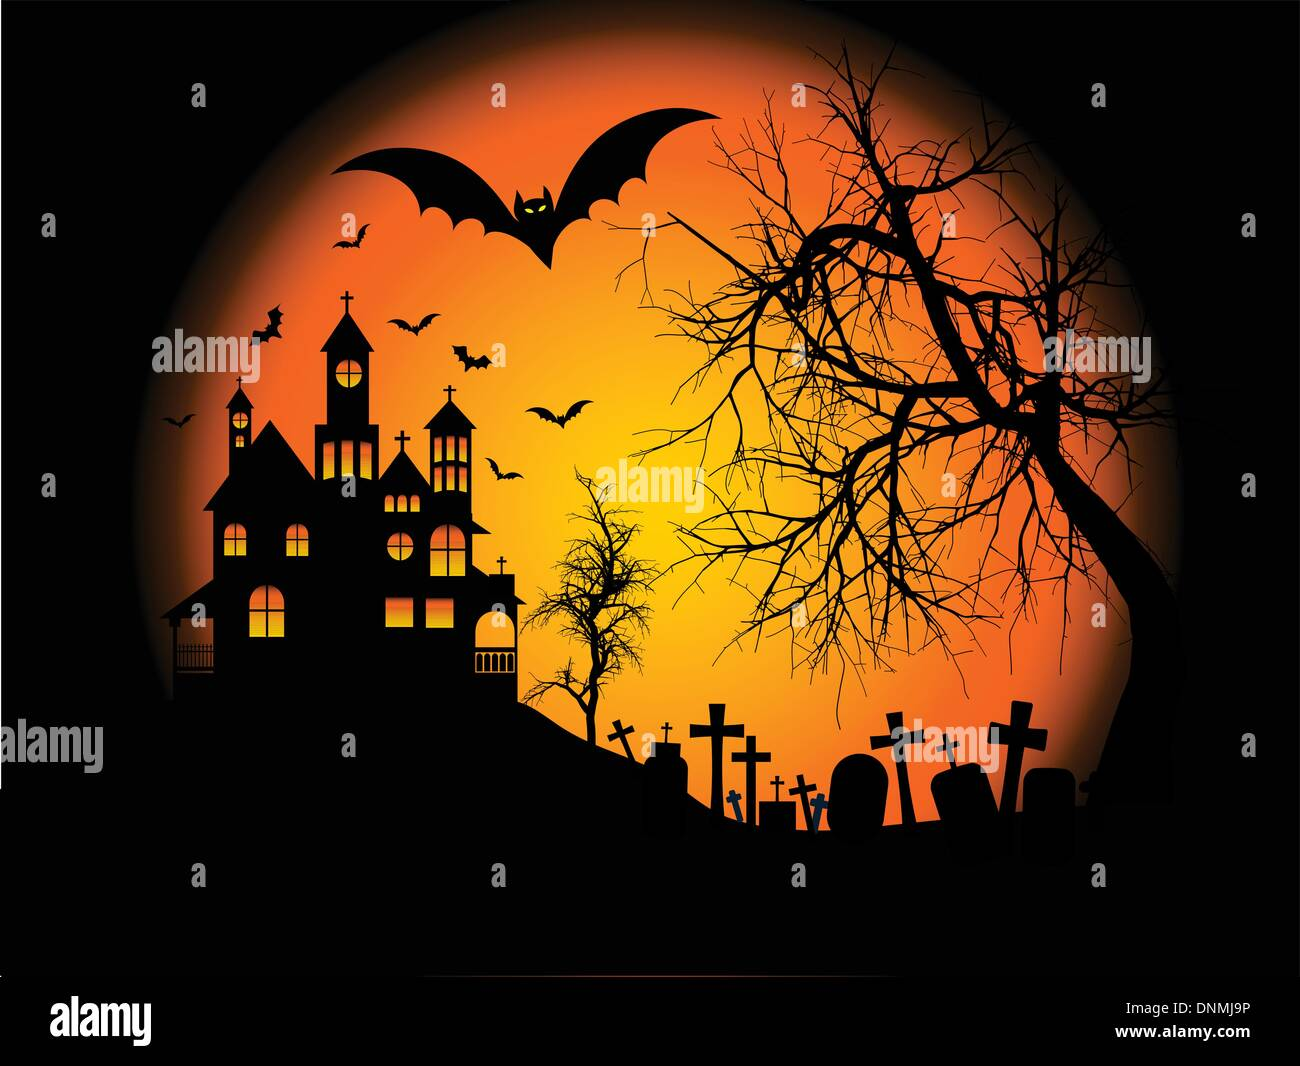 Spooky Halloween Background With Haunted House On A Hill ...